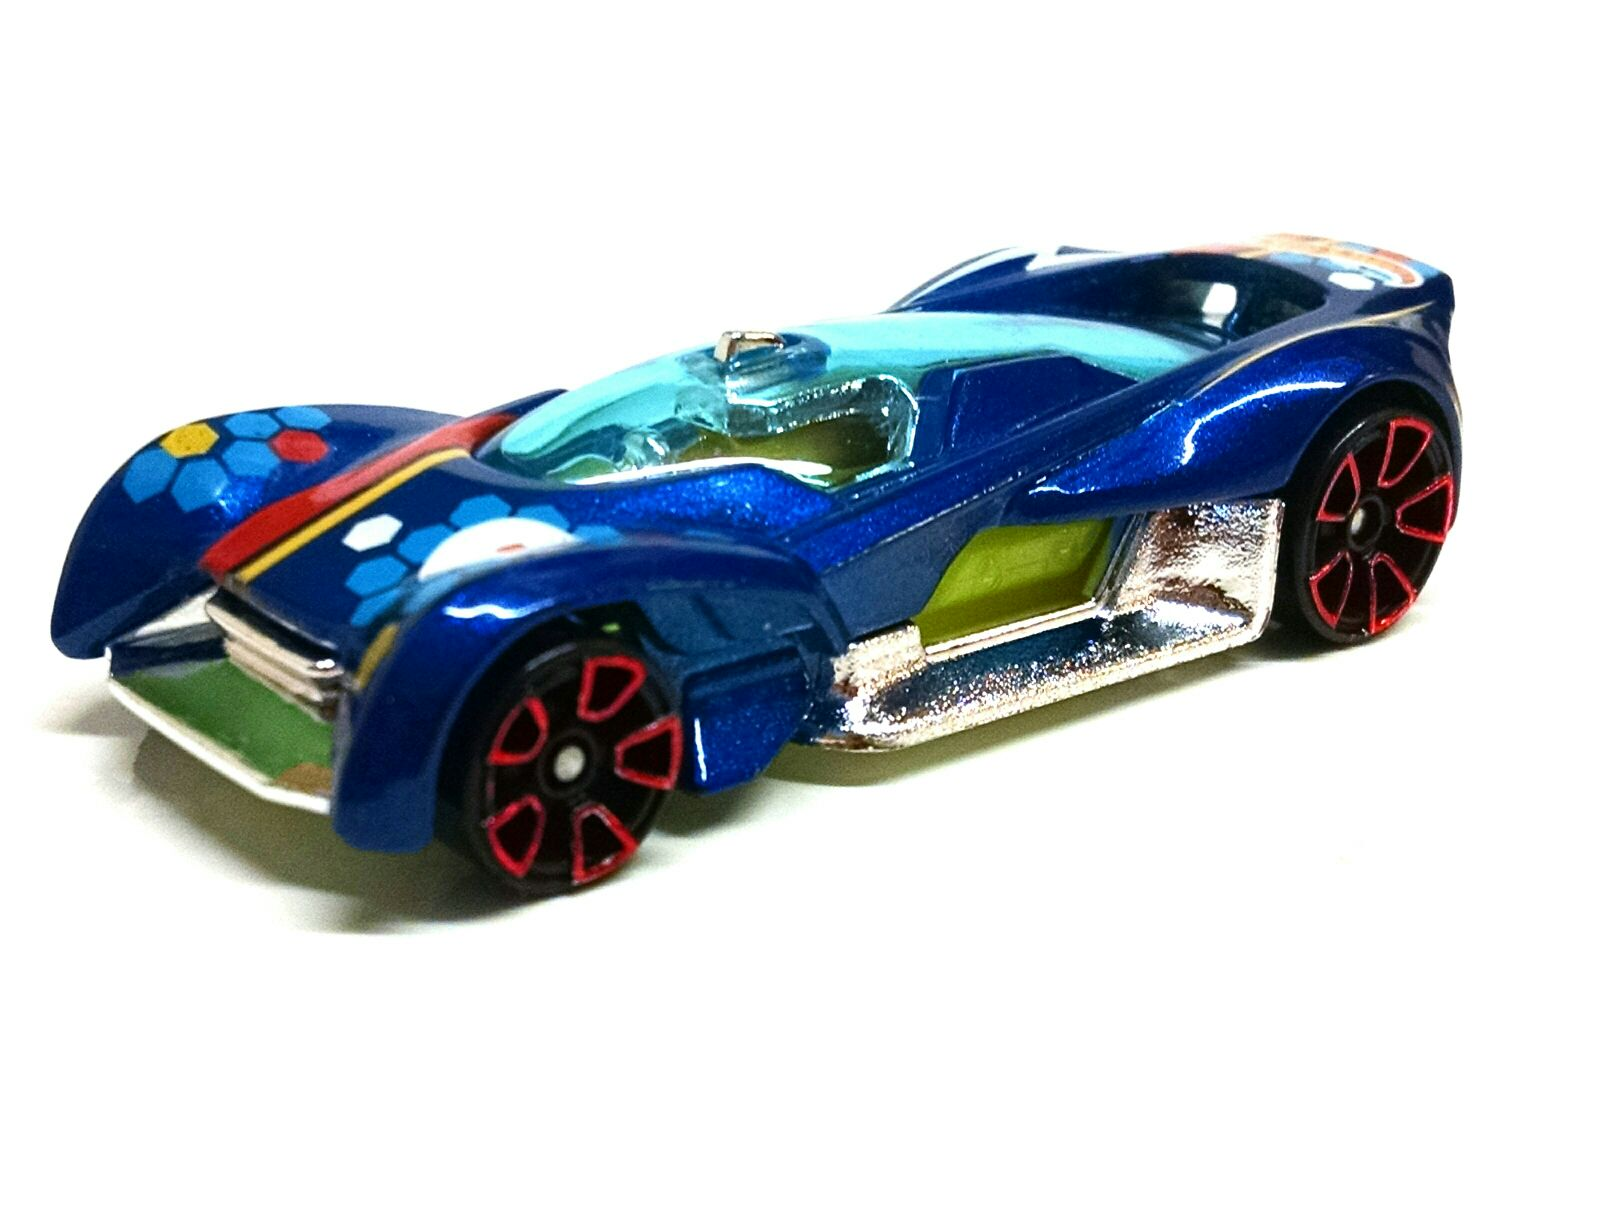 Hot Wheels Toy Cars : Futurismo toy car die cast and hot wheels from